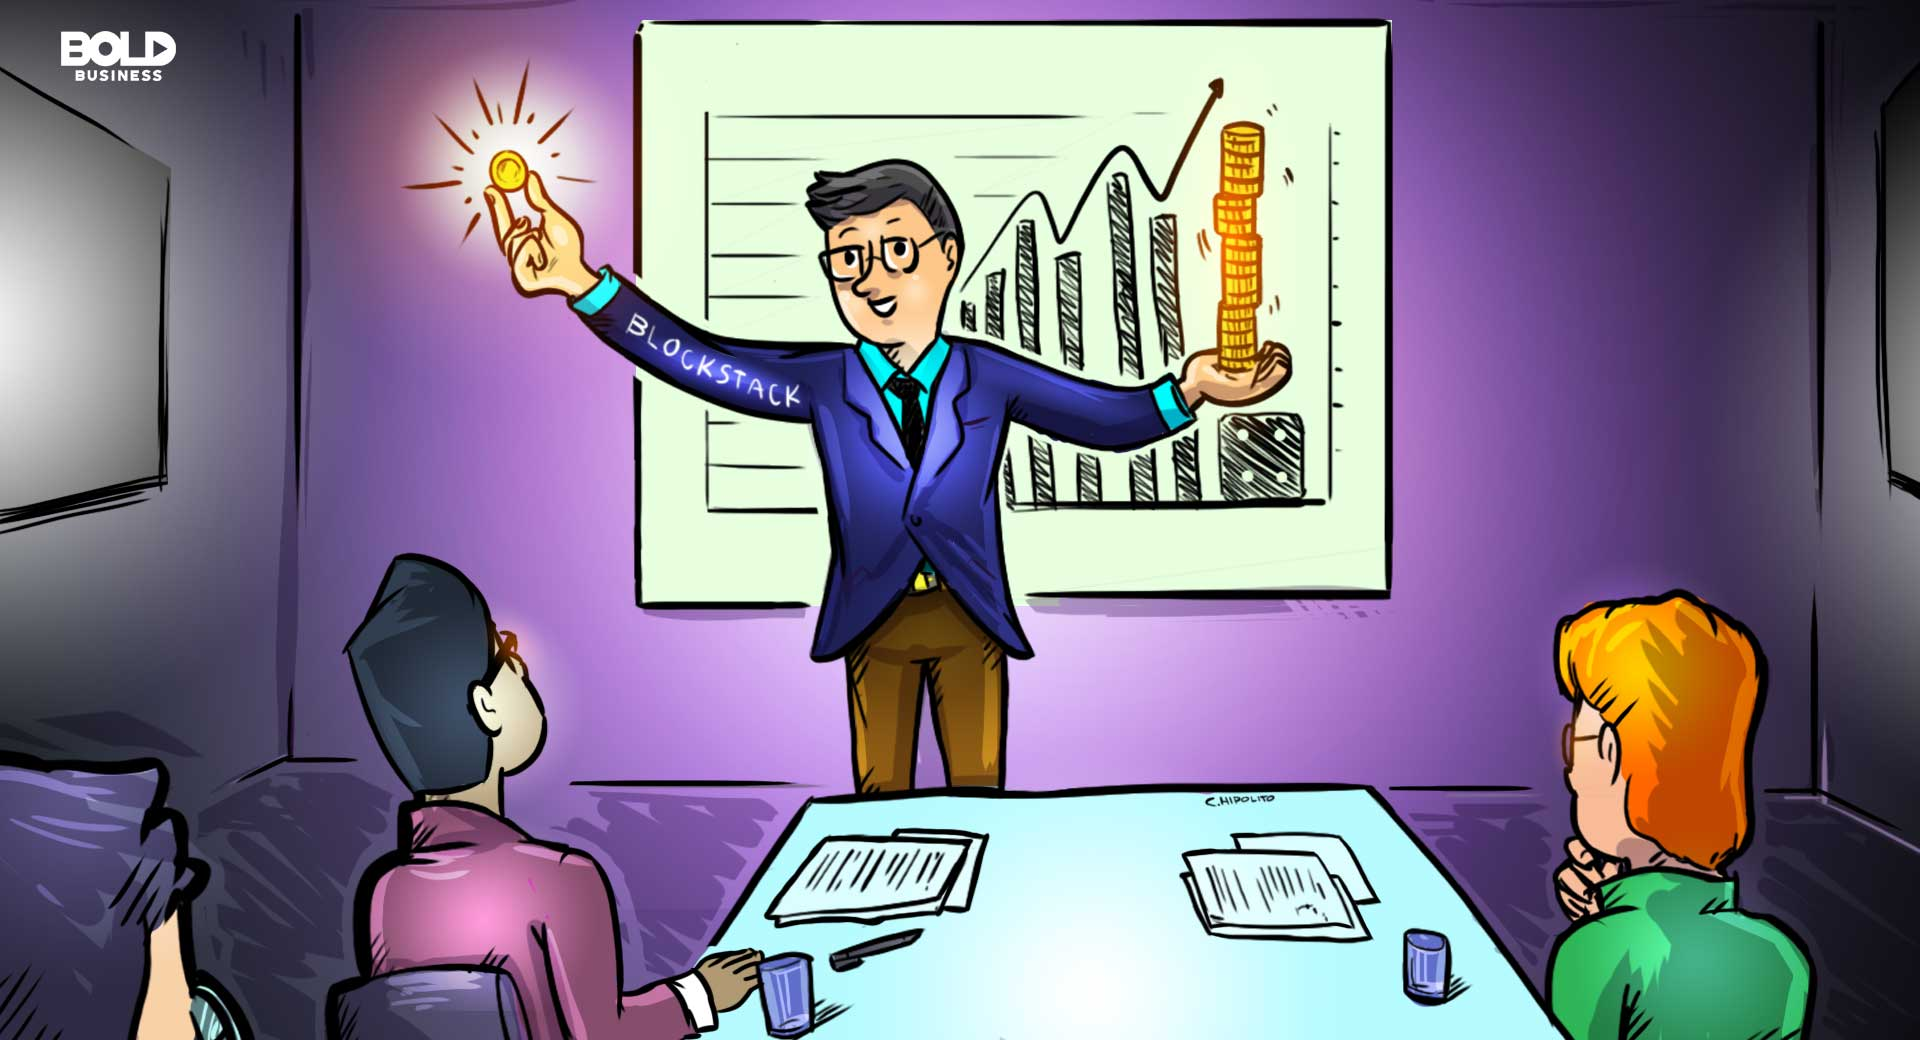 cartoon of a Blockstack employee smiling and holding up gold coins to his coworkers during a conference meeting